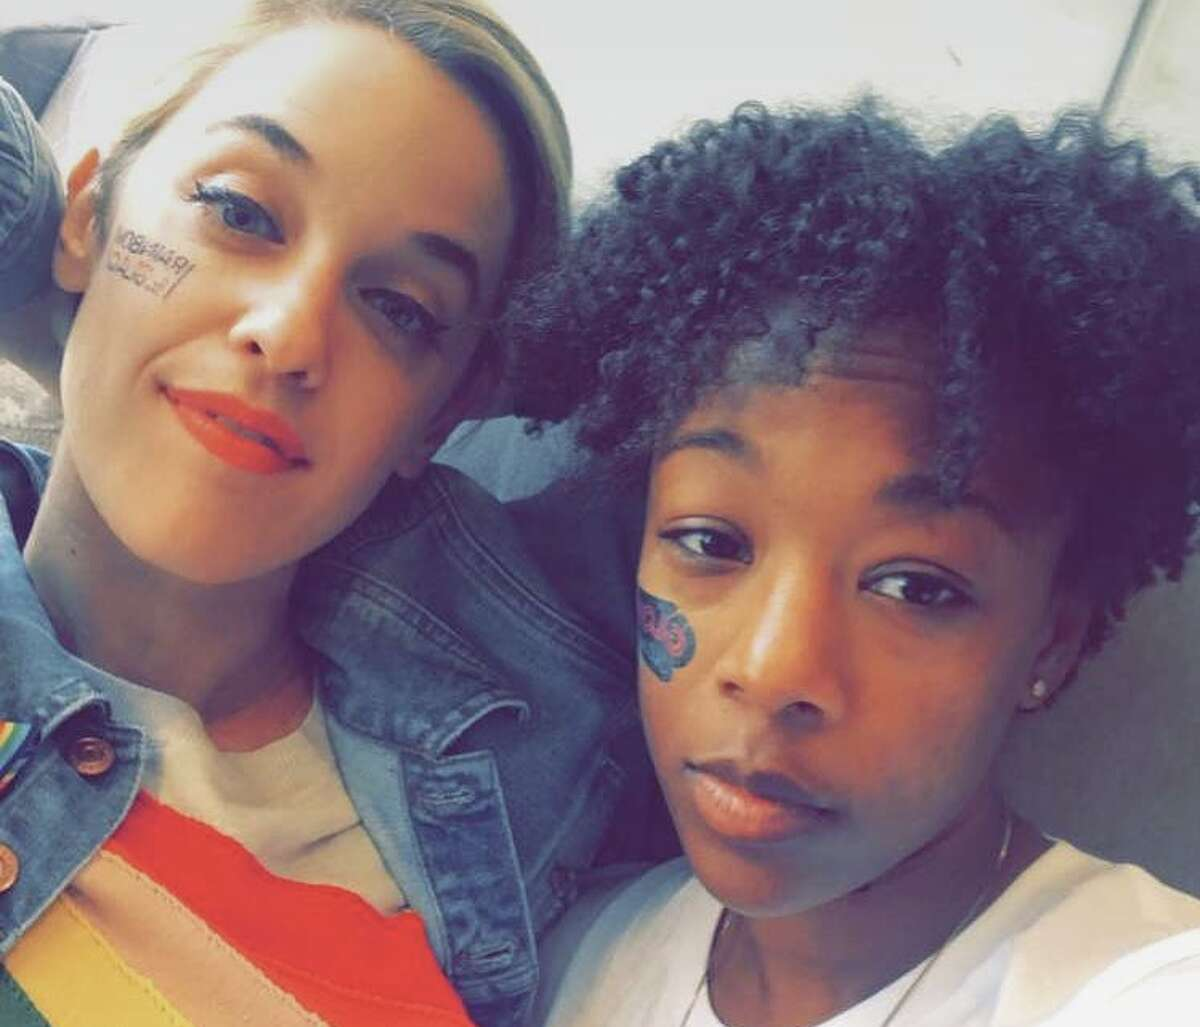 """Stars from Netflix shows """"Orange is the New Black"""" and """"13 Reasons Why"""" attended San Francisco Pride on Sunday, June 25. Pictured is Samira Wiley on right (Poussey on """"Orange is the New Black"""") with her wife and """"Orange is the New Black"""" writer Lauren Morelli."""